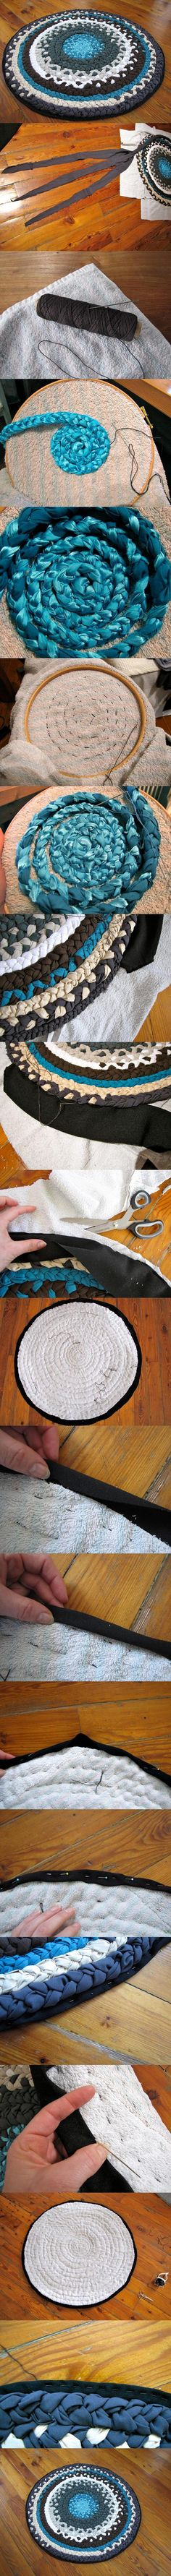 DIY Braided Fabric Rug DIY Braided Fabric Rug